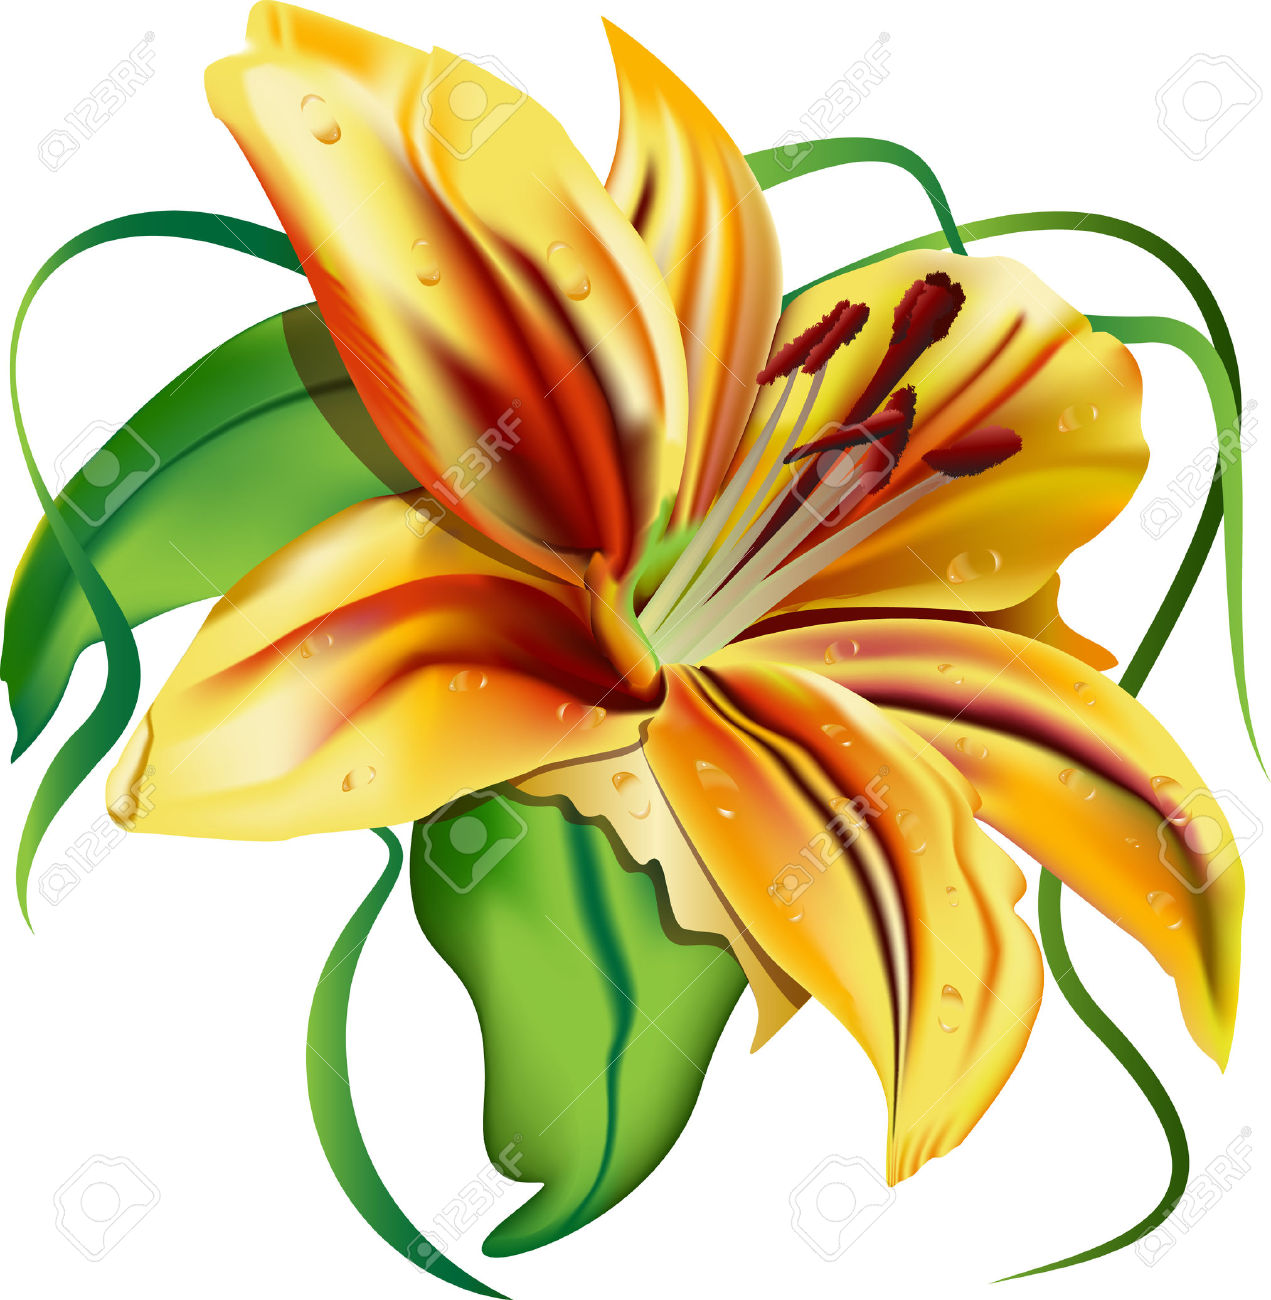 Tiger Lily clipart #15, Download drawings